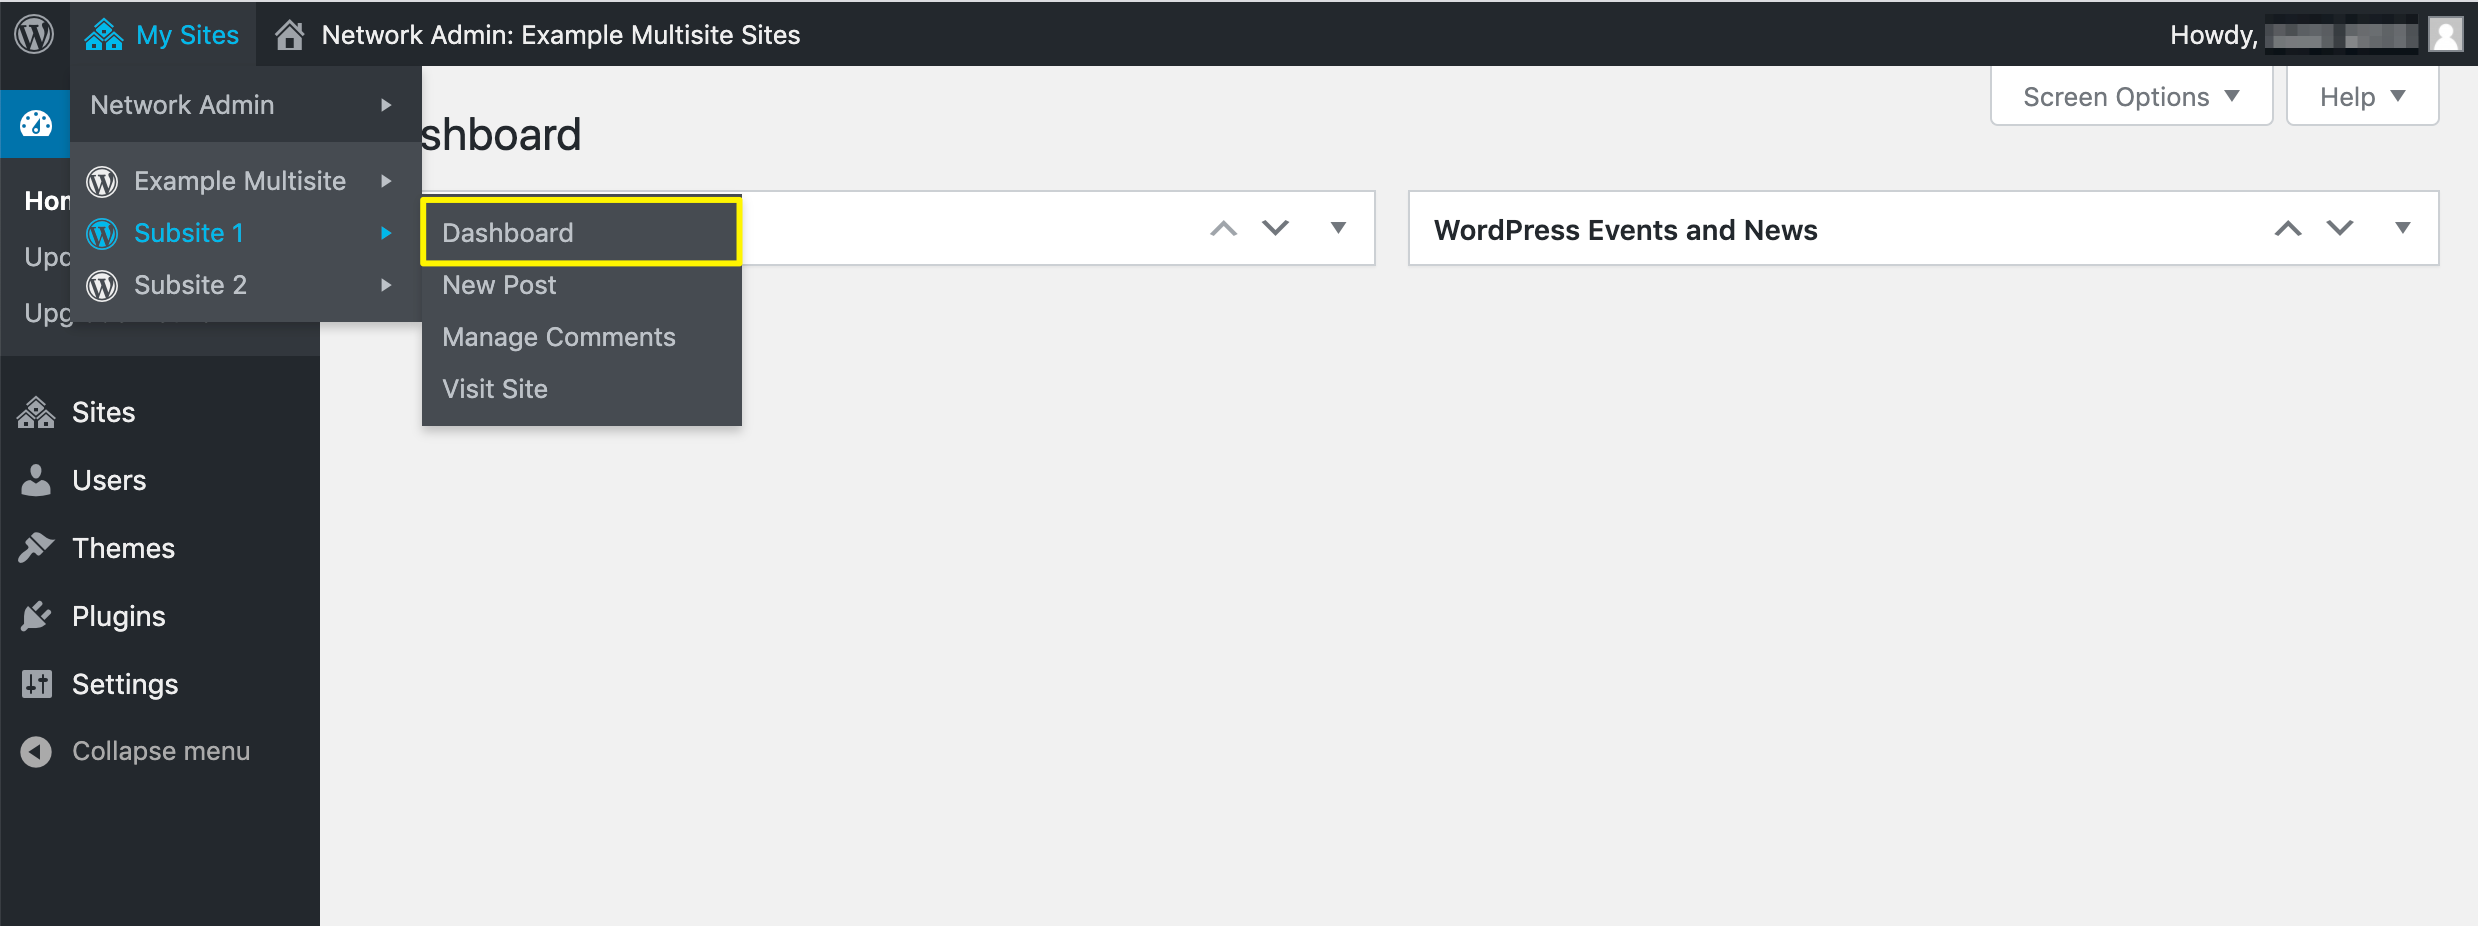 Accessing a subsite dashboard in WordPress multisite.